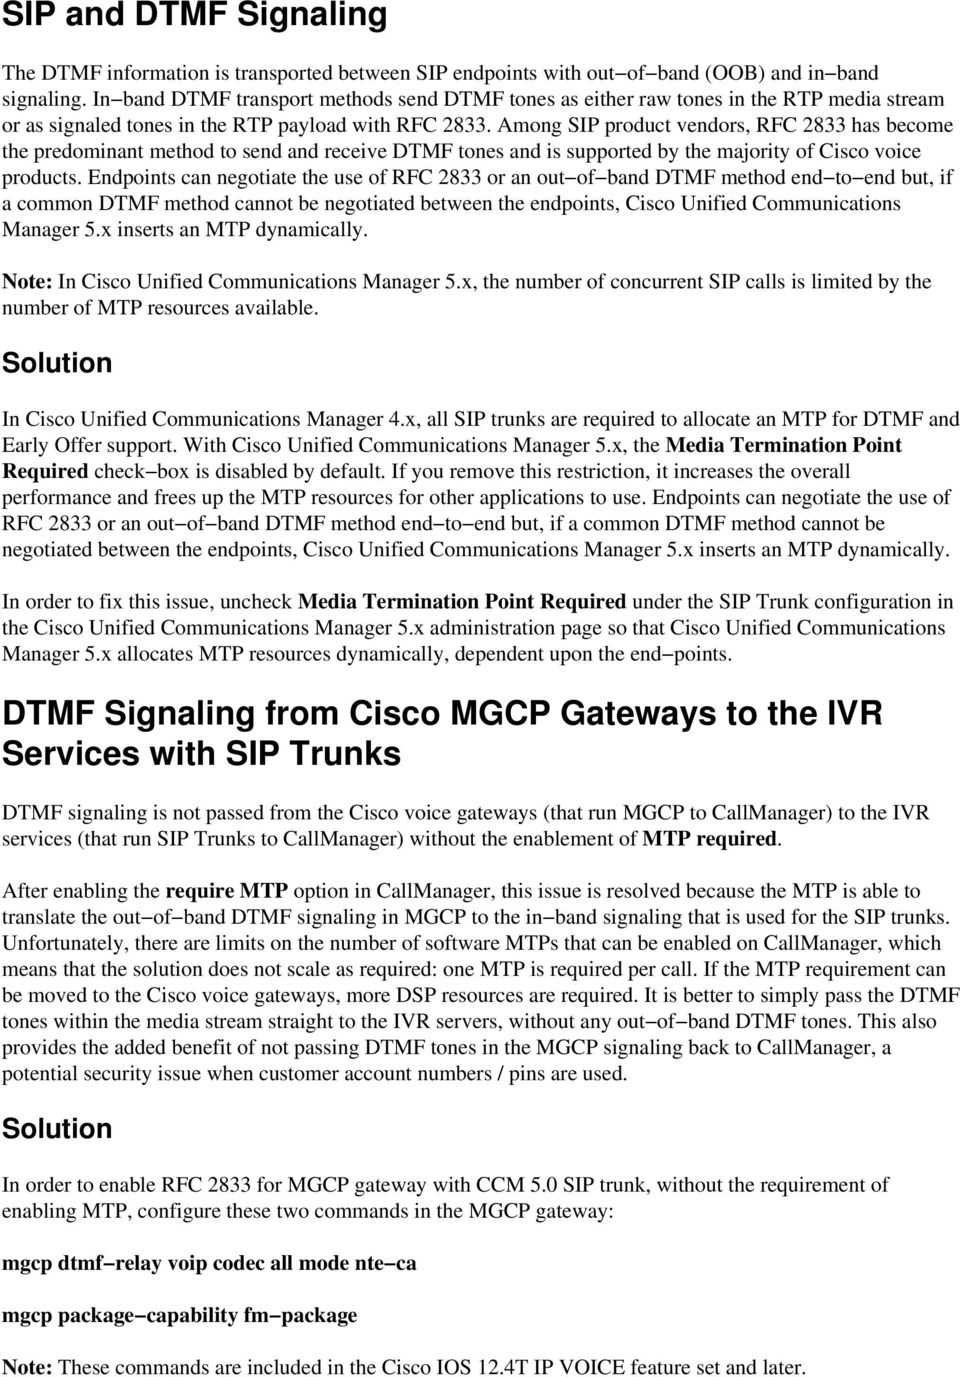 Troubleshooting SIP Trunks with Cisco CallManager 5 x and Later - PDF